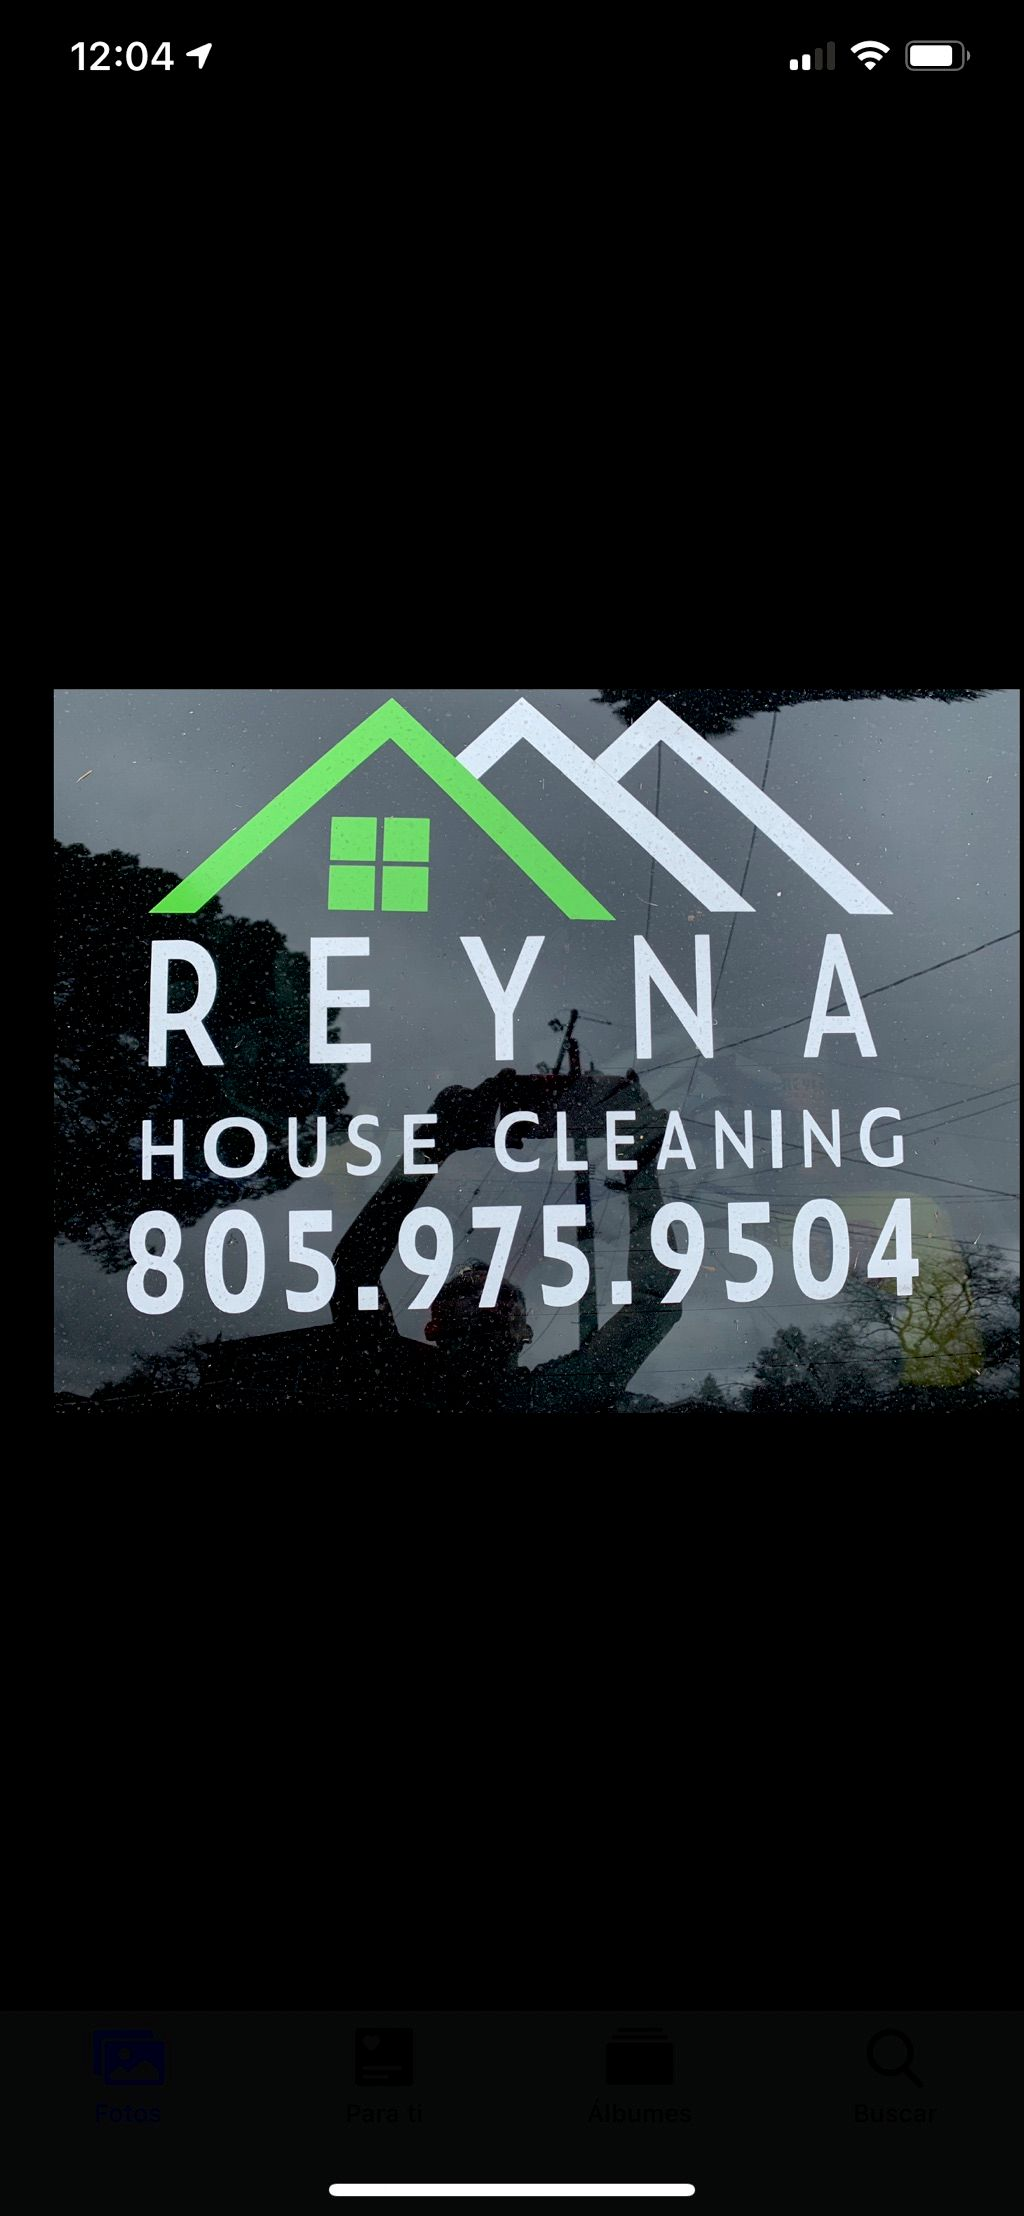 Reyna House Cleaning